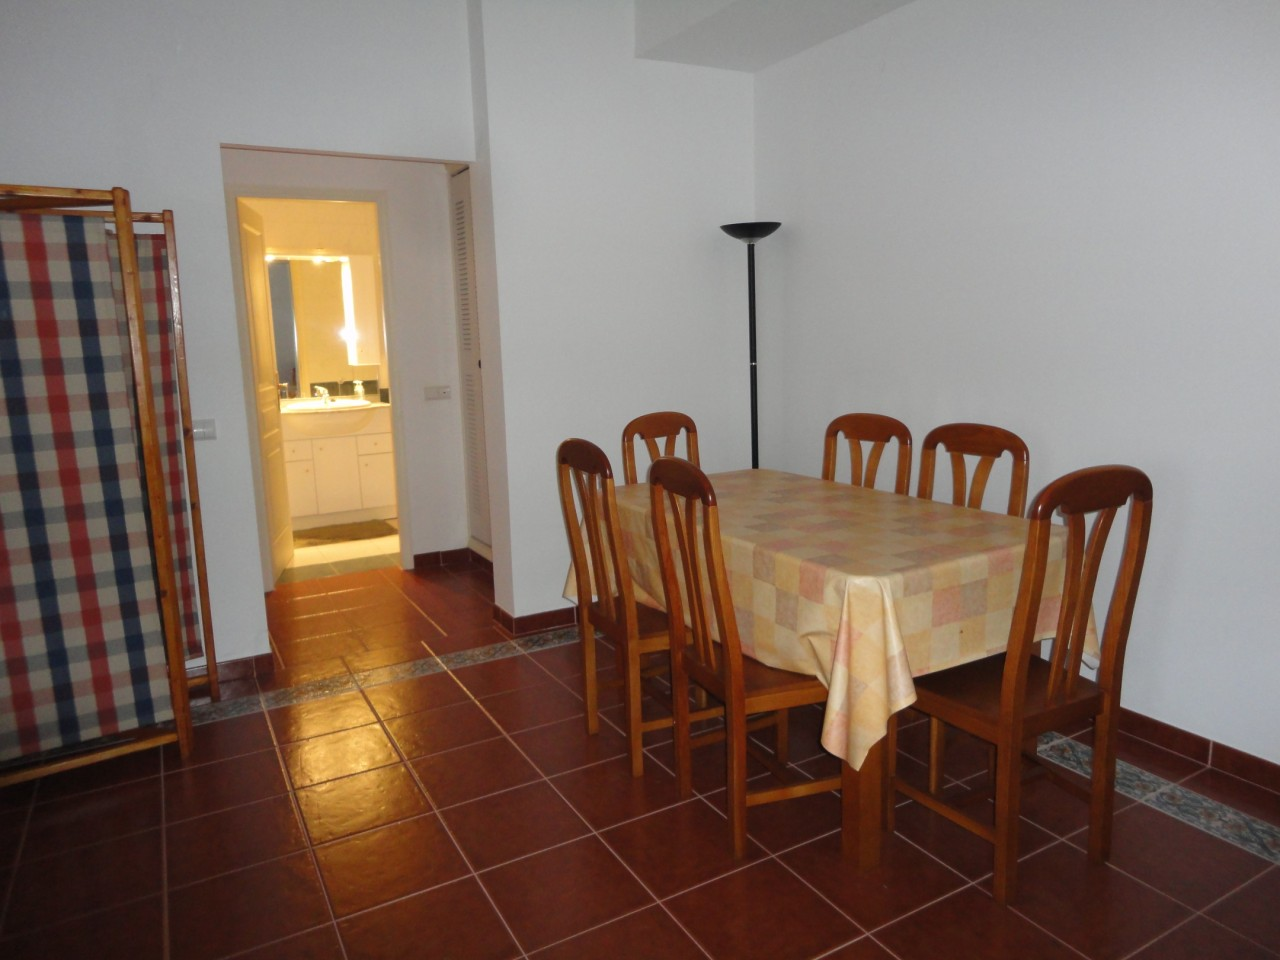 Condominium_for_sale_in_Albufeira_SMA6730